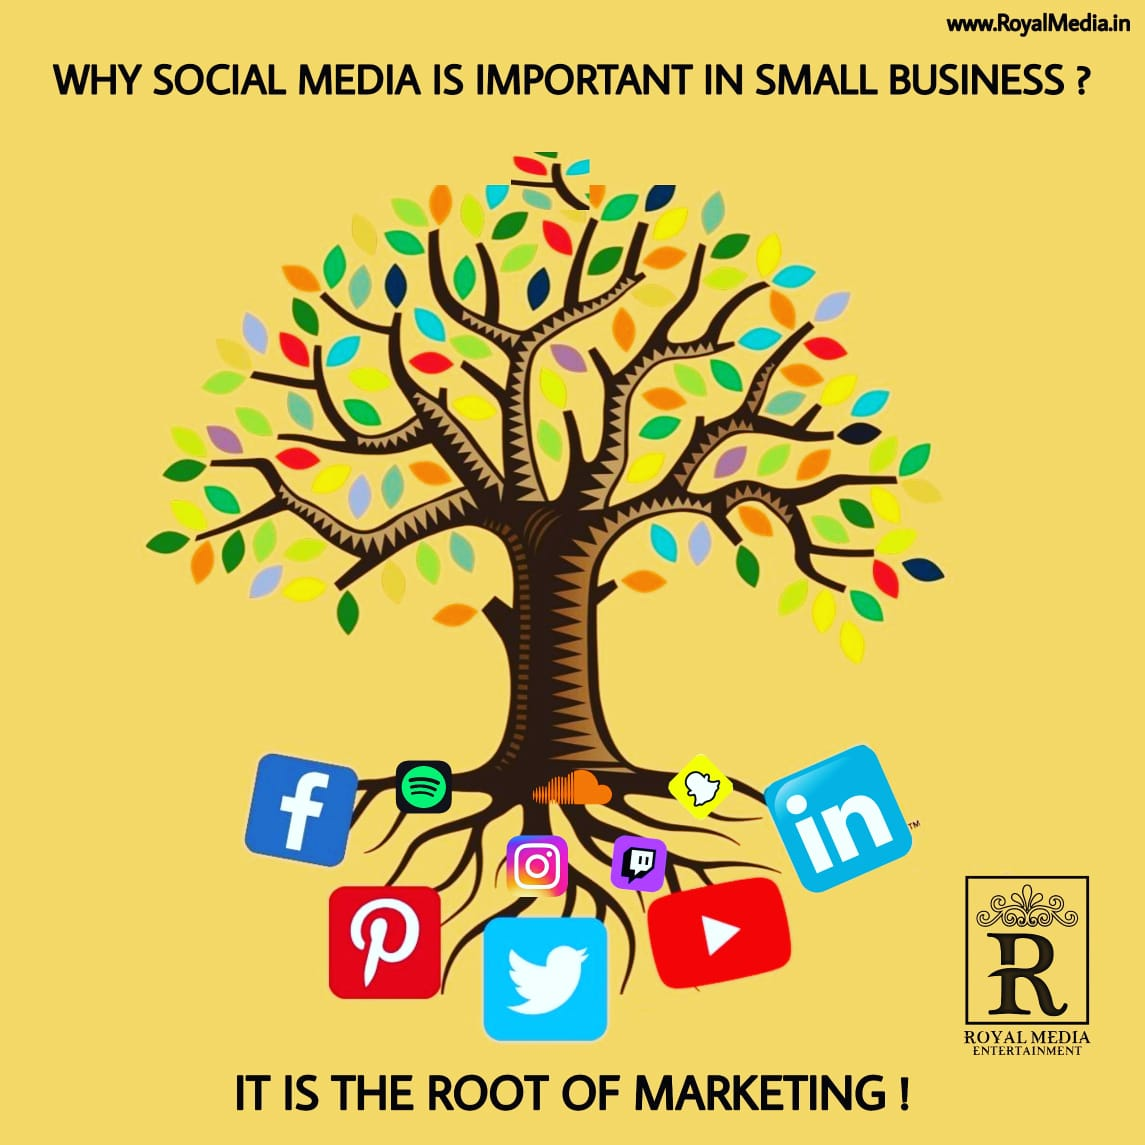 👉Brighten up your business on social media.